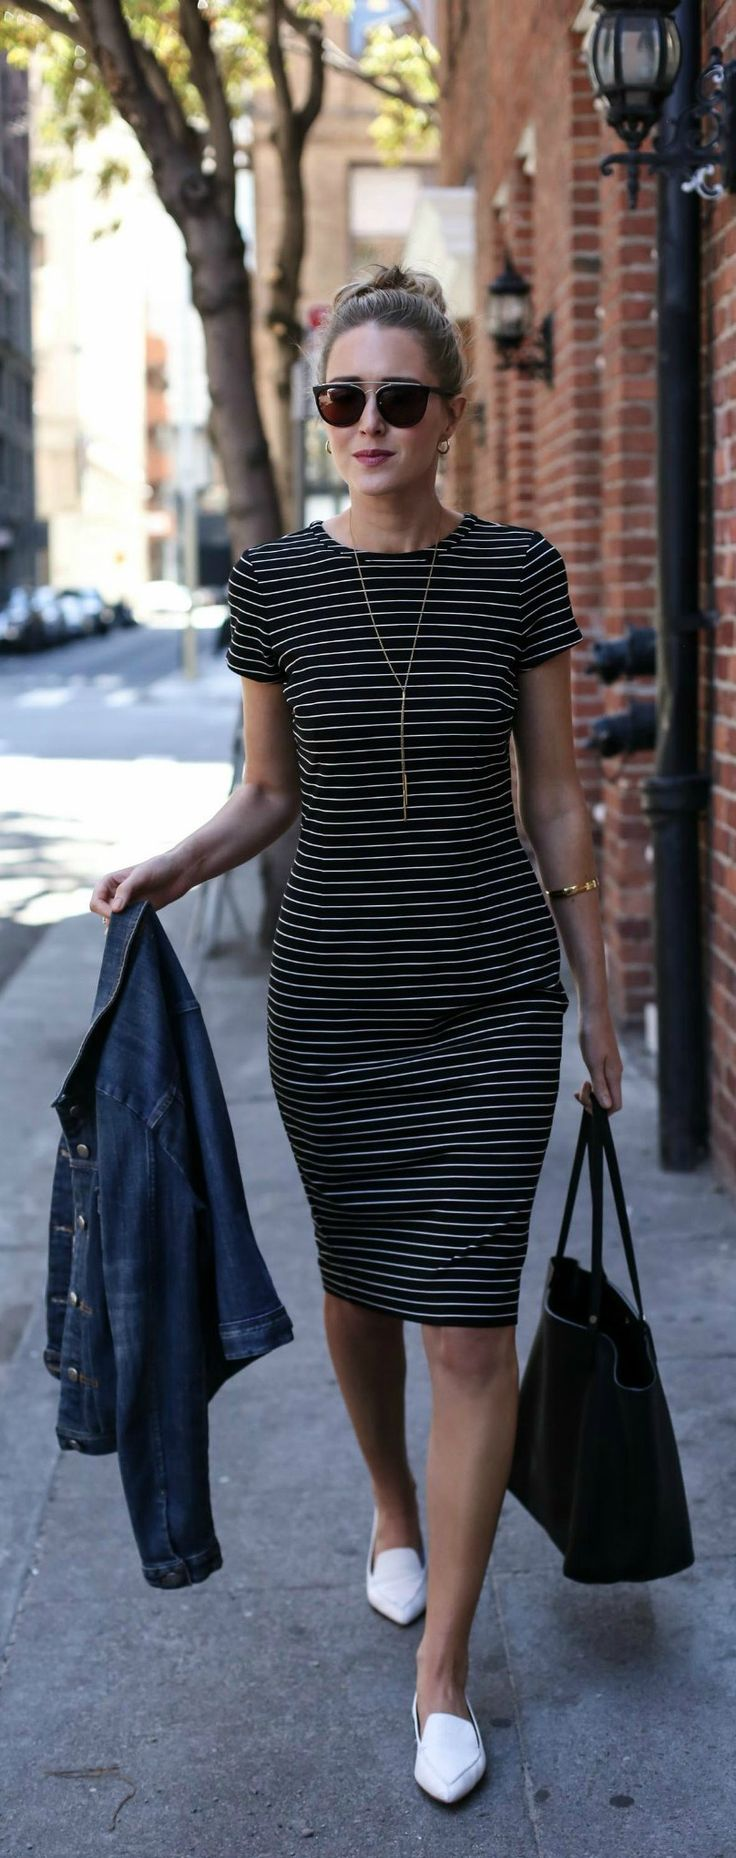 striped midi sheath dress, denim jacket, white pointed toe loafers, black tote bag, gold lariat necklace, black sunglasses + messy bun hairstyle {ann taylor, nicholas kirkwood, gigi new york, gorjana, smoke x mirrors}